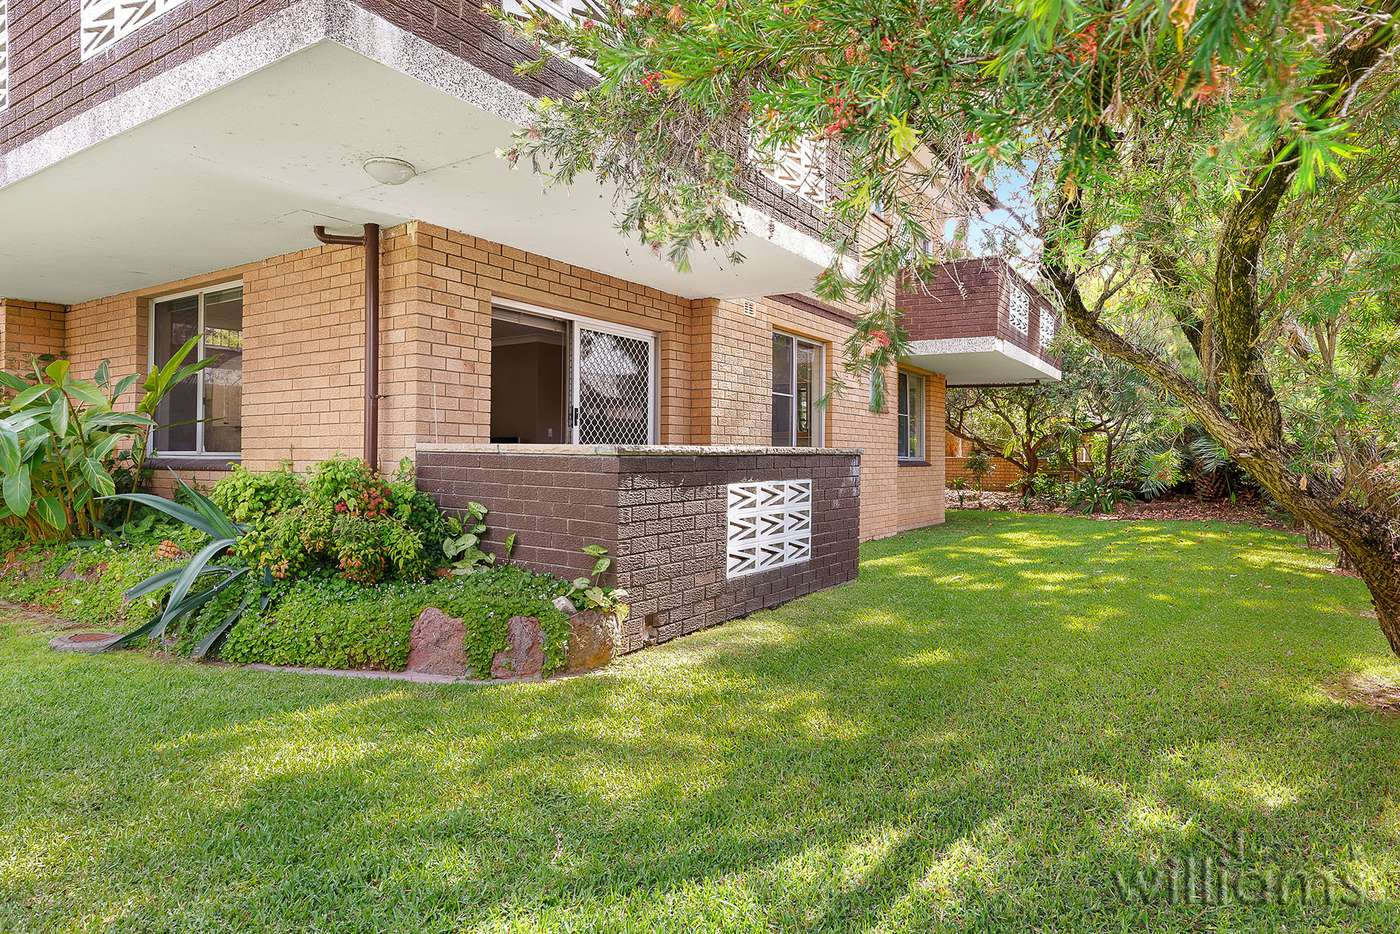 Main view of Homely unit listing, 5/8 Rokeby Road, Abbotsford NSW 2046